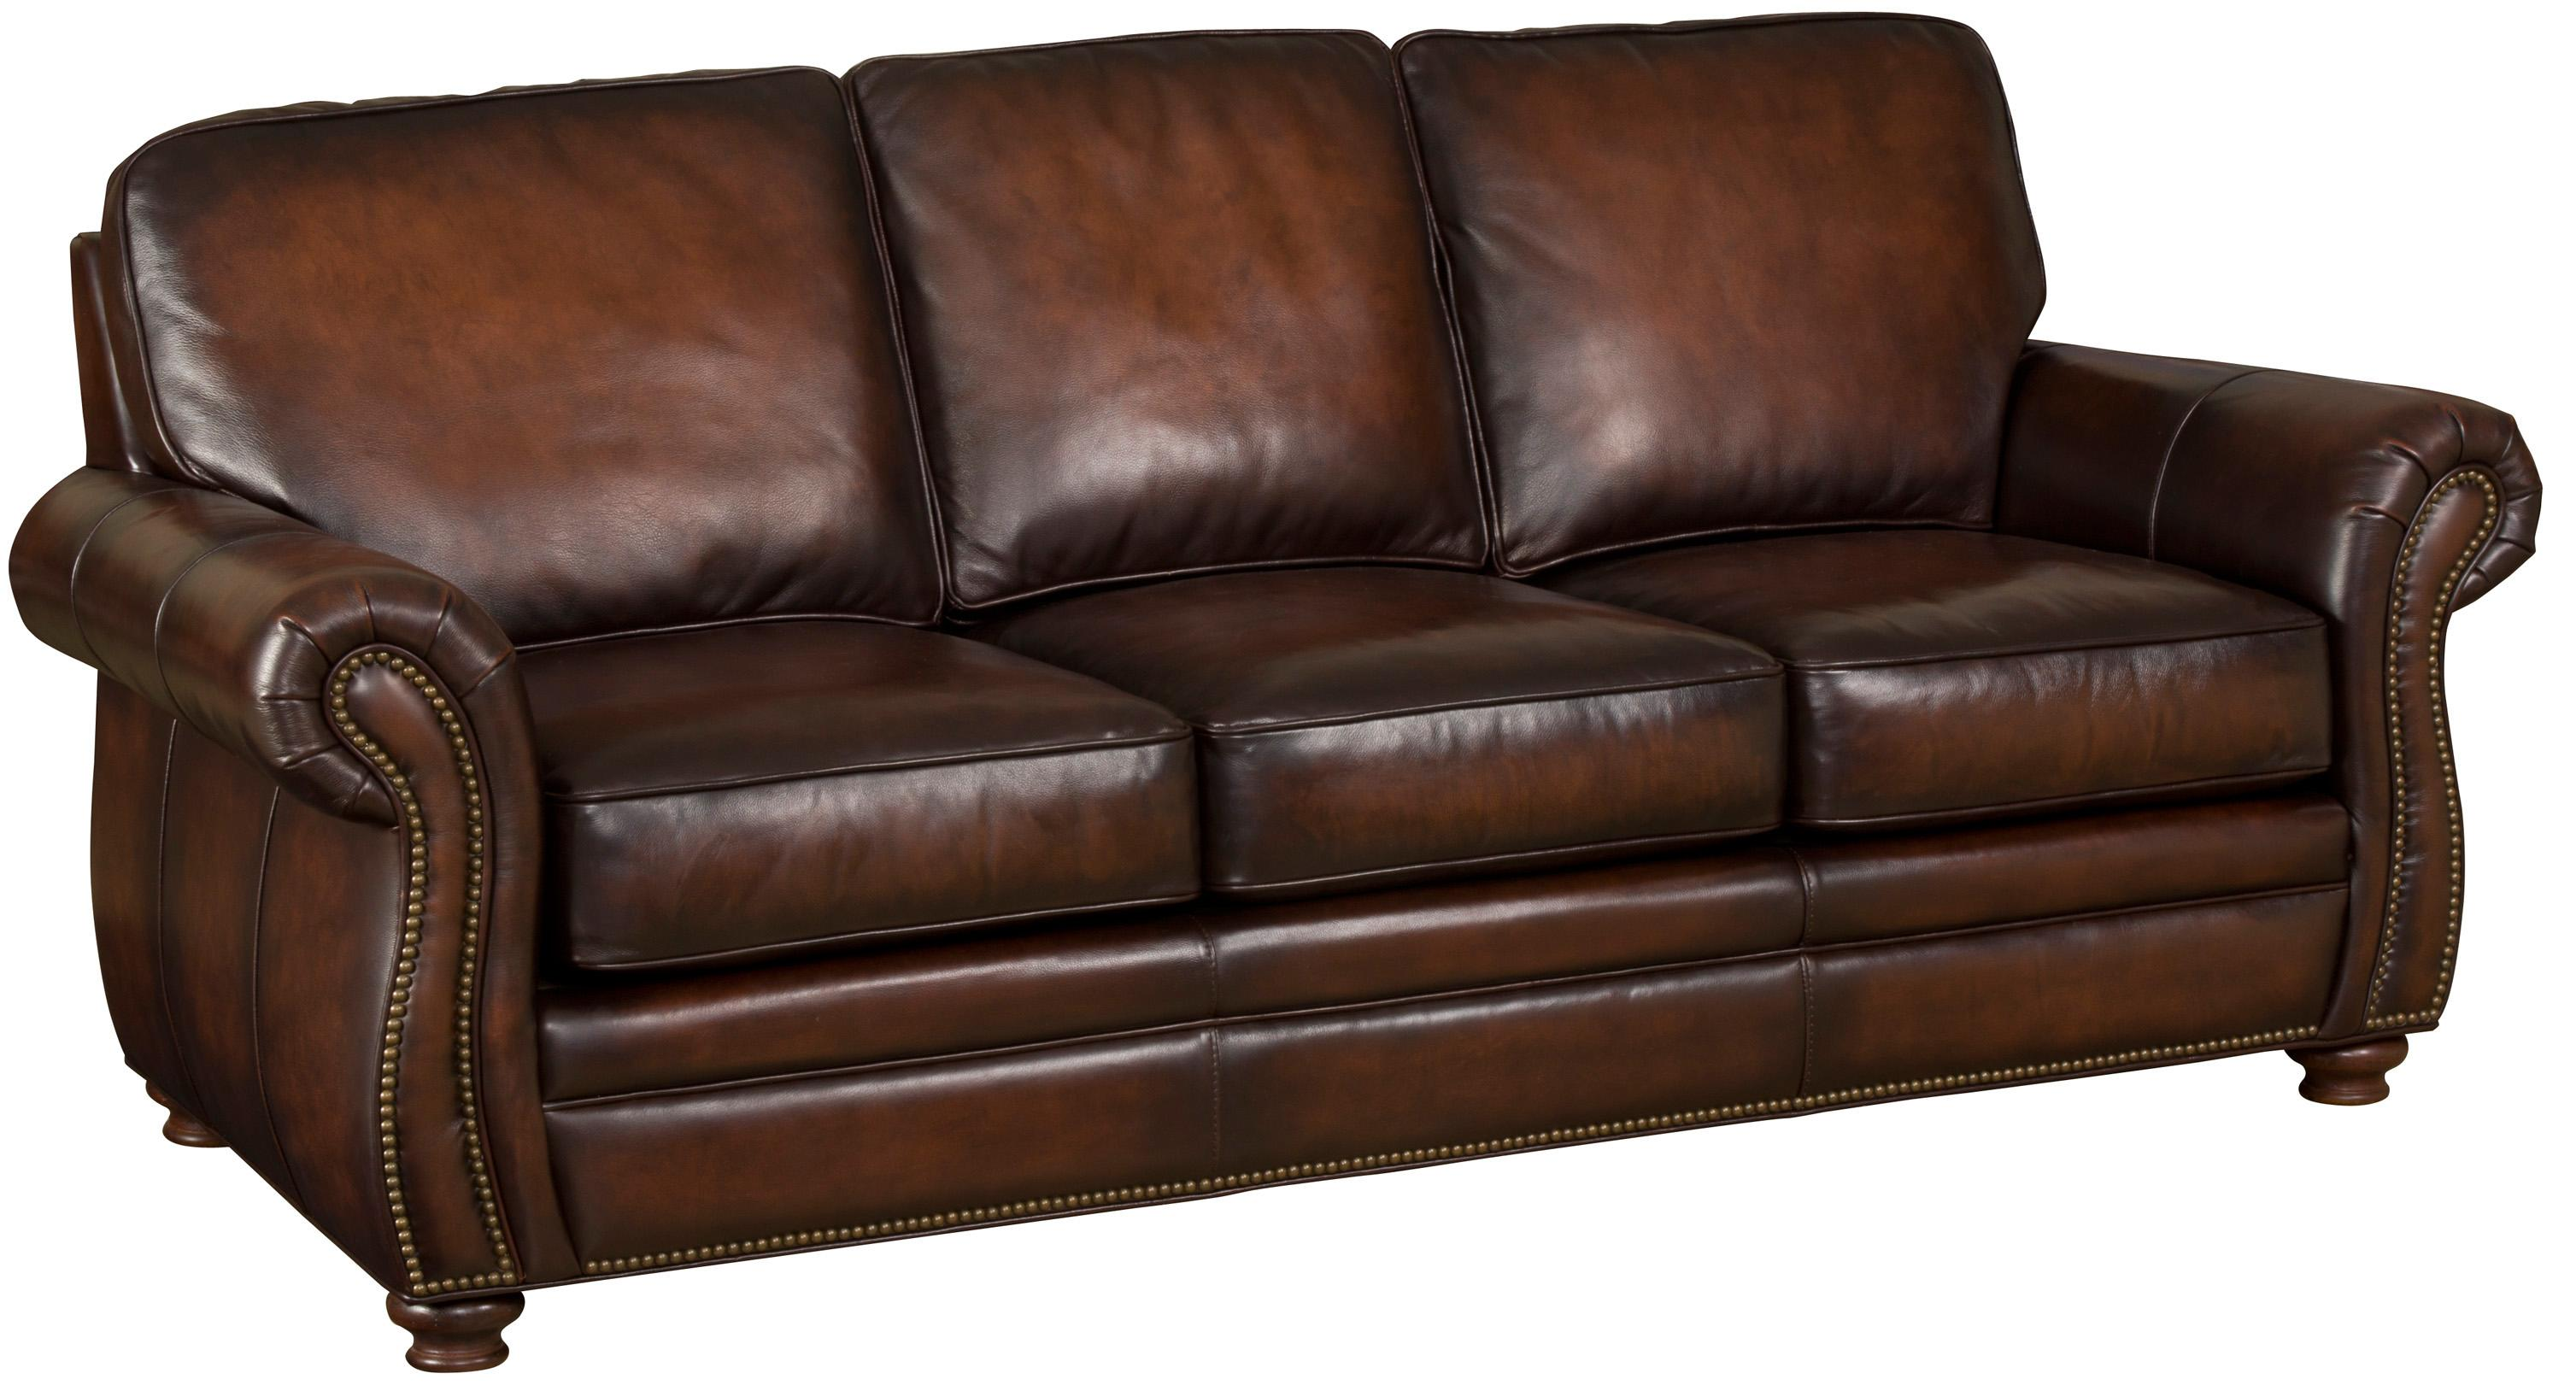 Hooker Leather Chair Hooker Furniture Ss186 Brown Leather Sofa With Exposed